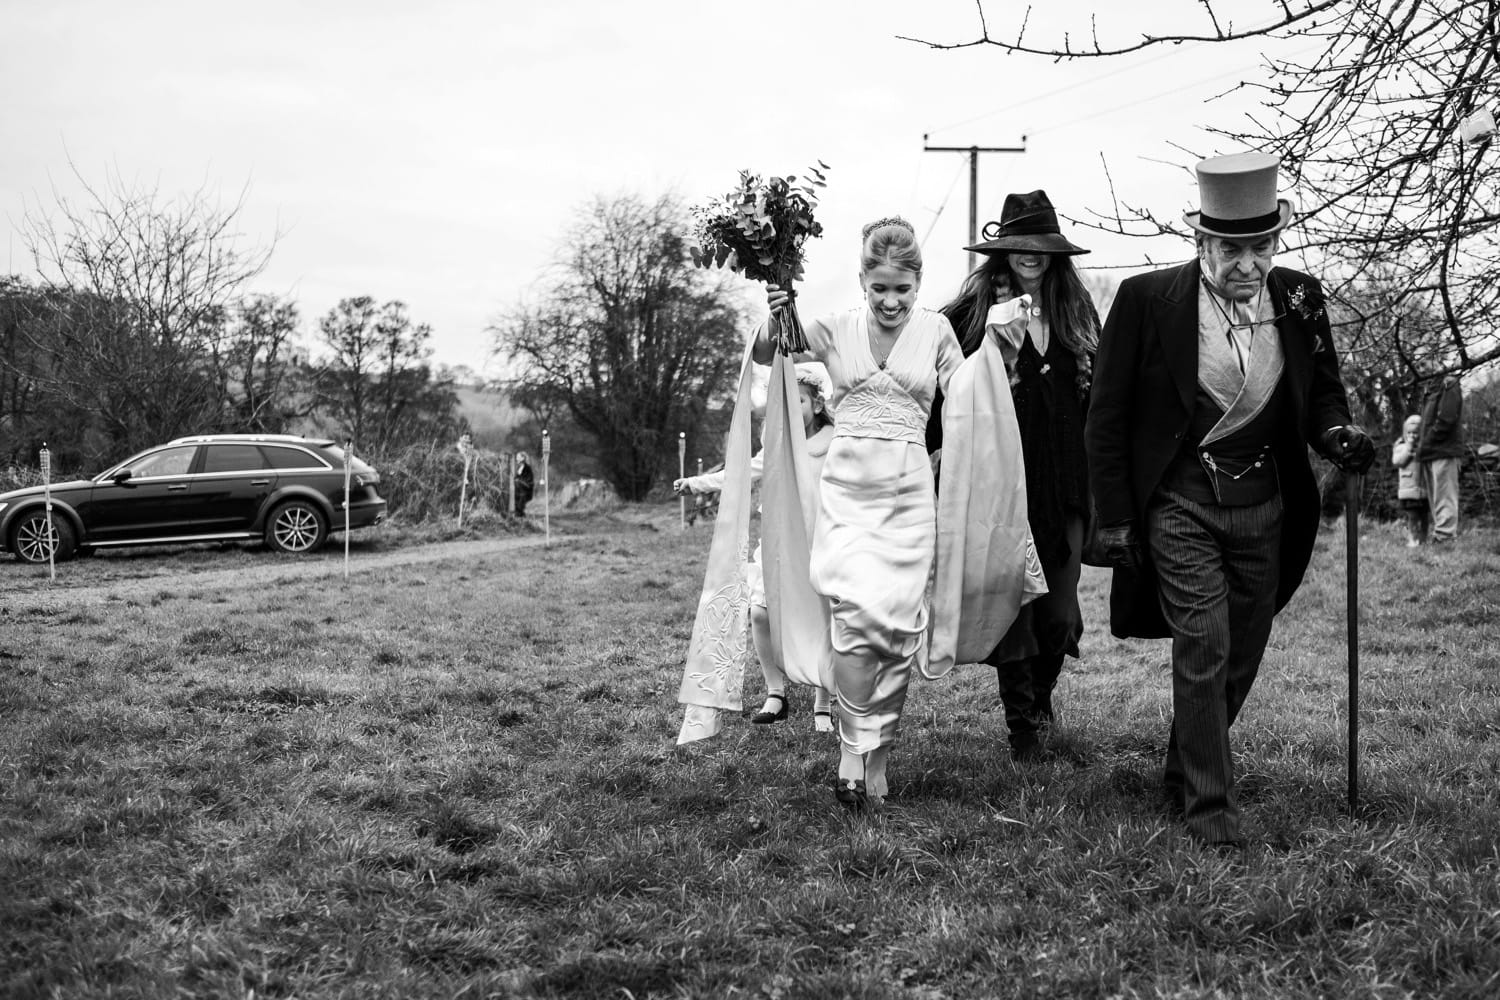 Bride arrives for church wedding in a Monmouthshire field